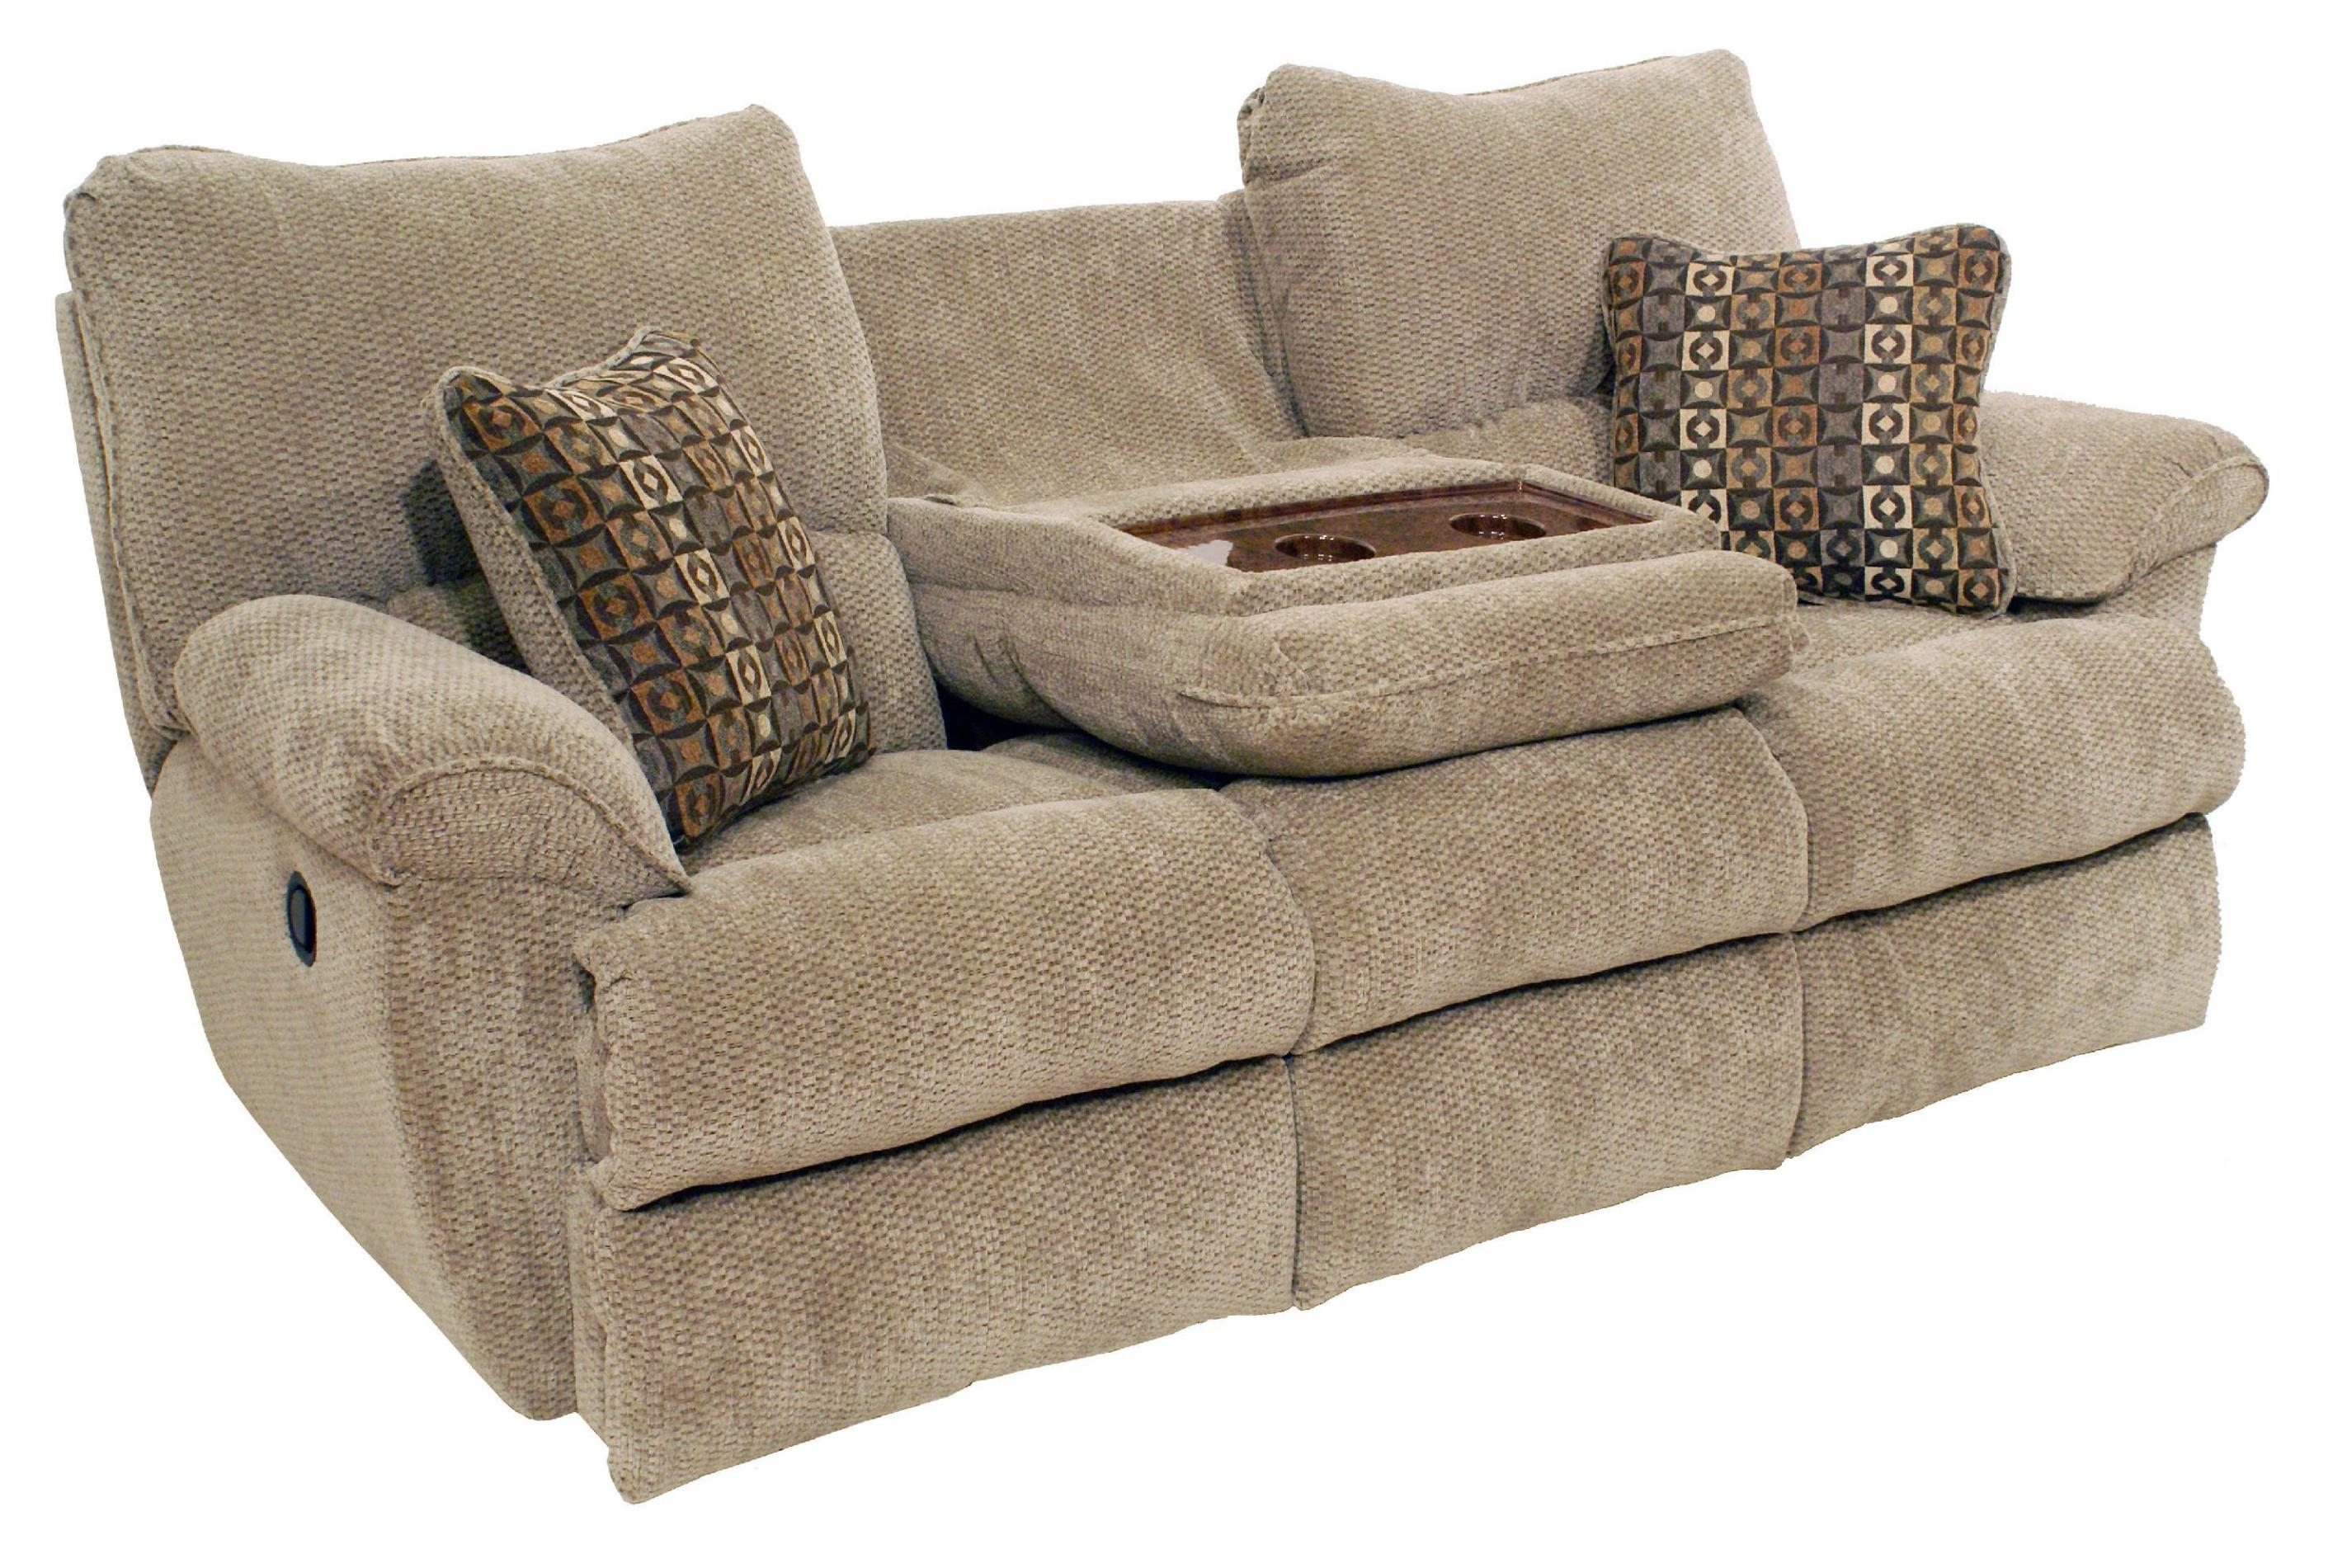 Image of: Double Recliner Couch